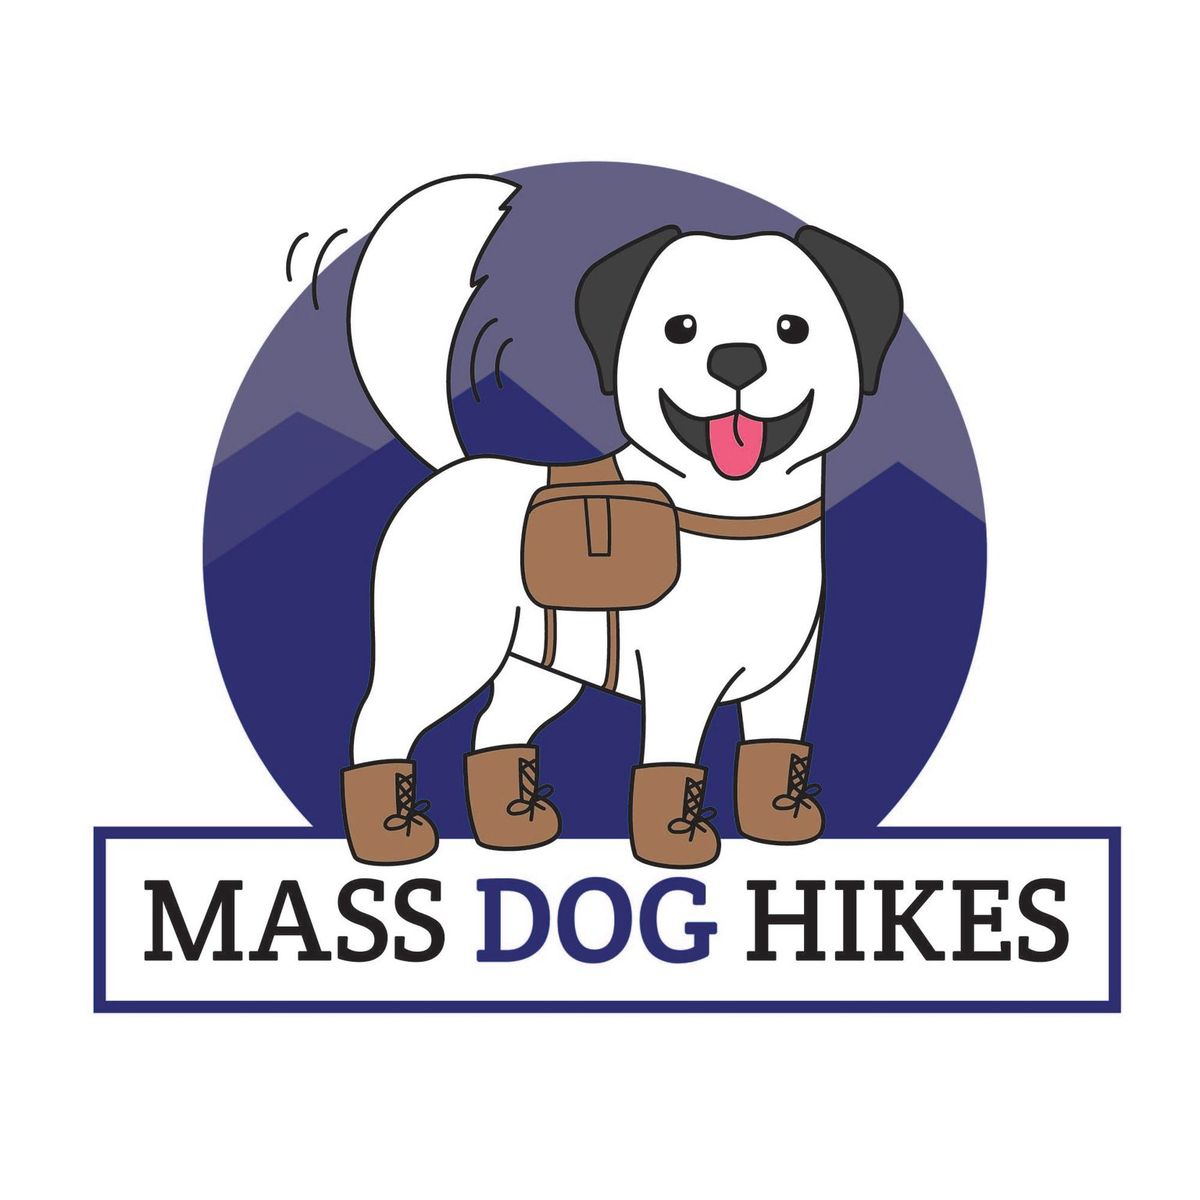 Mass Dog Hikes